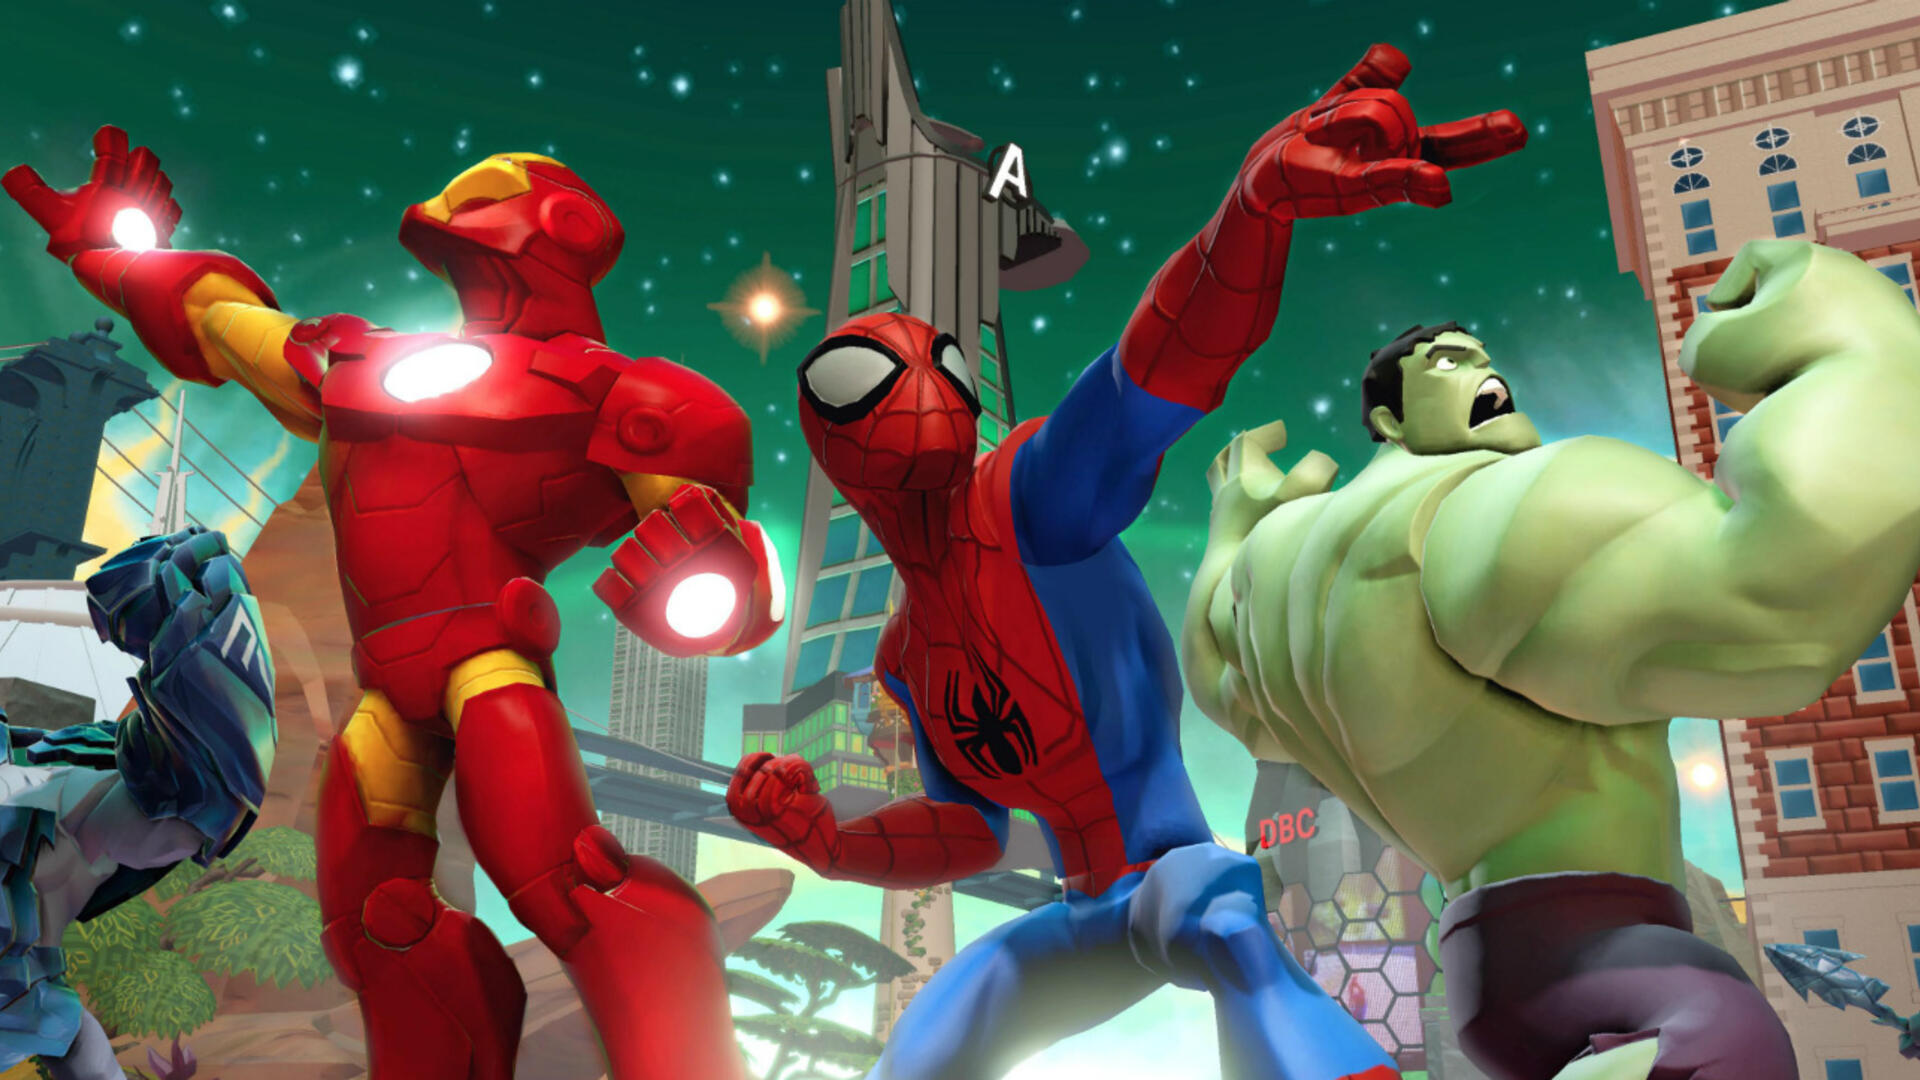 New Marvel Online Games Deal is First Step in Broader Partnership With Chinese Mobile Developer NetEase